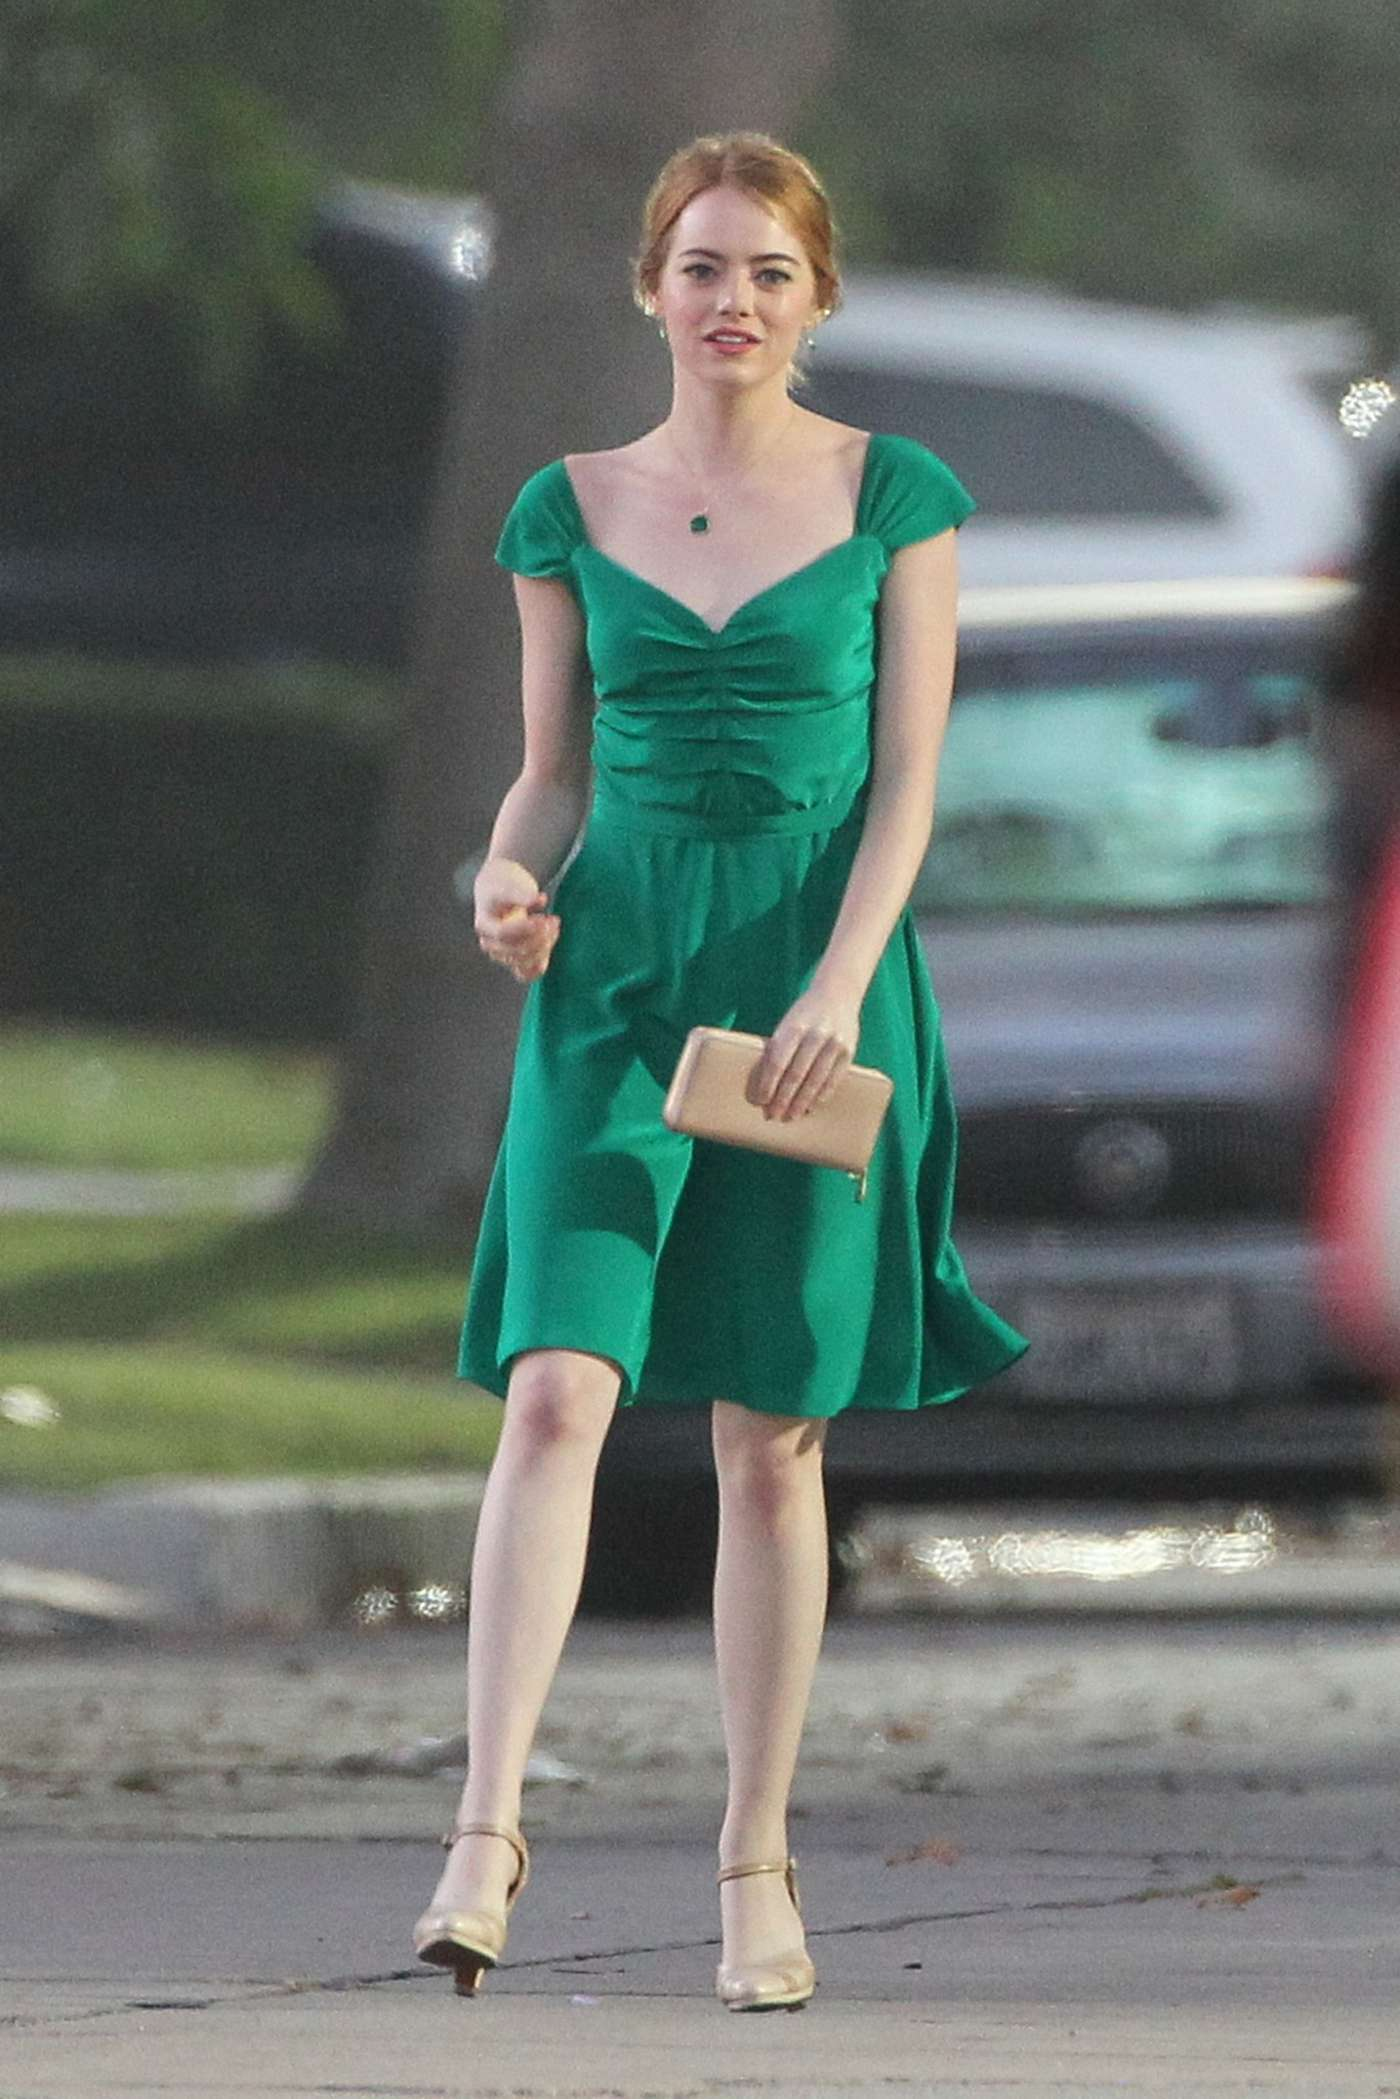 http://www.gotceleb.com/wp-content/uploads/photos/emma-stone/filming-la-la-land-in-los-angeles/Emma-Stone-in-Green-Dress-on-La-La-Land--03.jpg